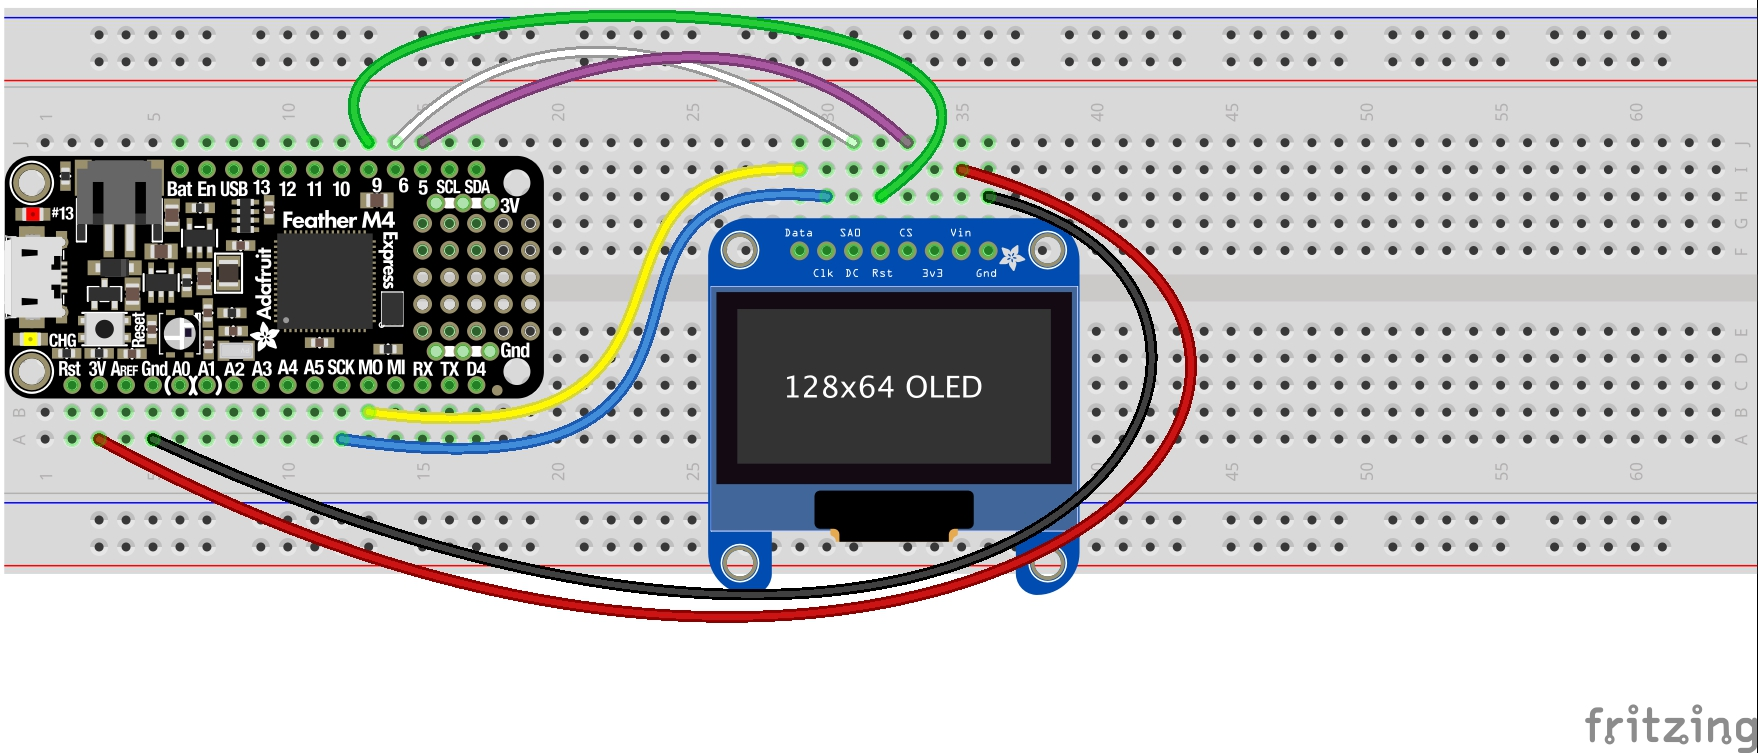 adafruit_products_FeatherM4_1_3_inch_128_64_SPI_OLED_bb.jpg